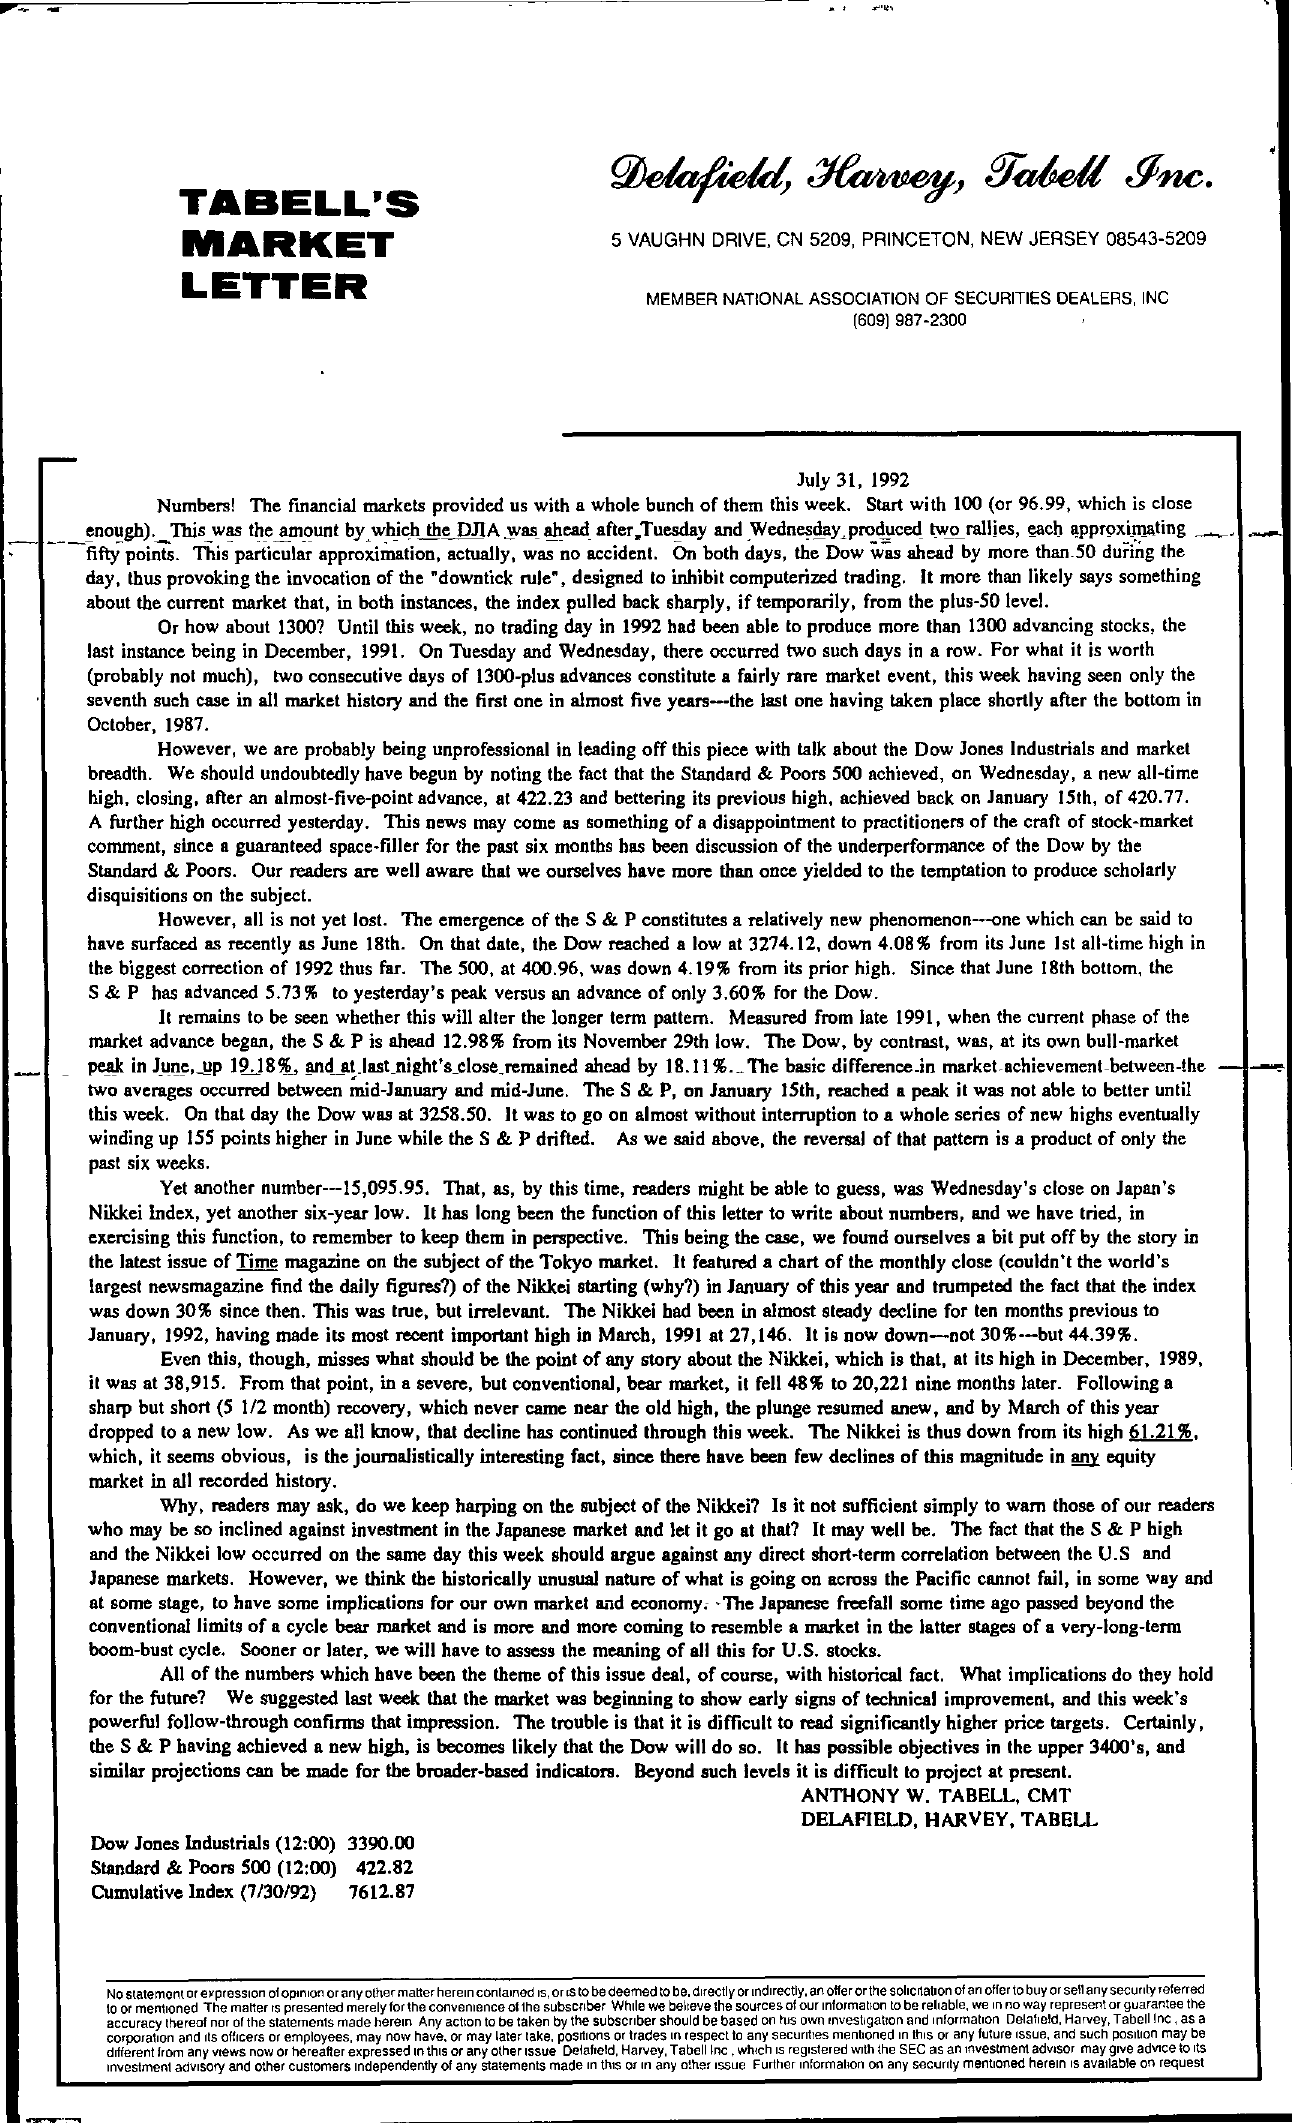 Tabell's Market Letter - July 31, 1992